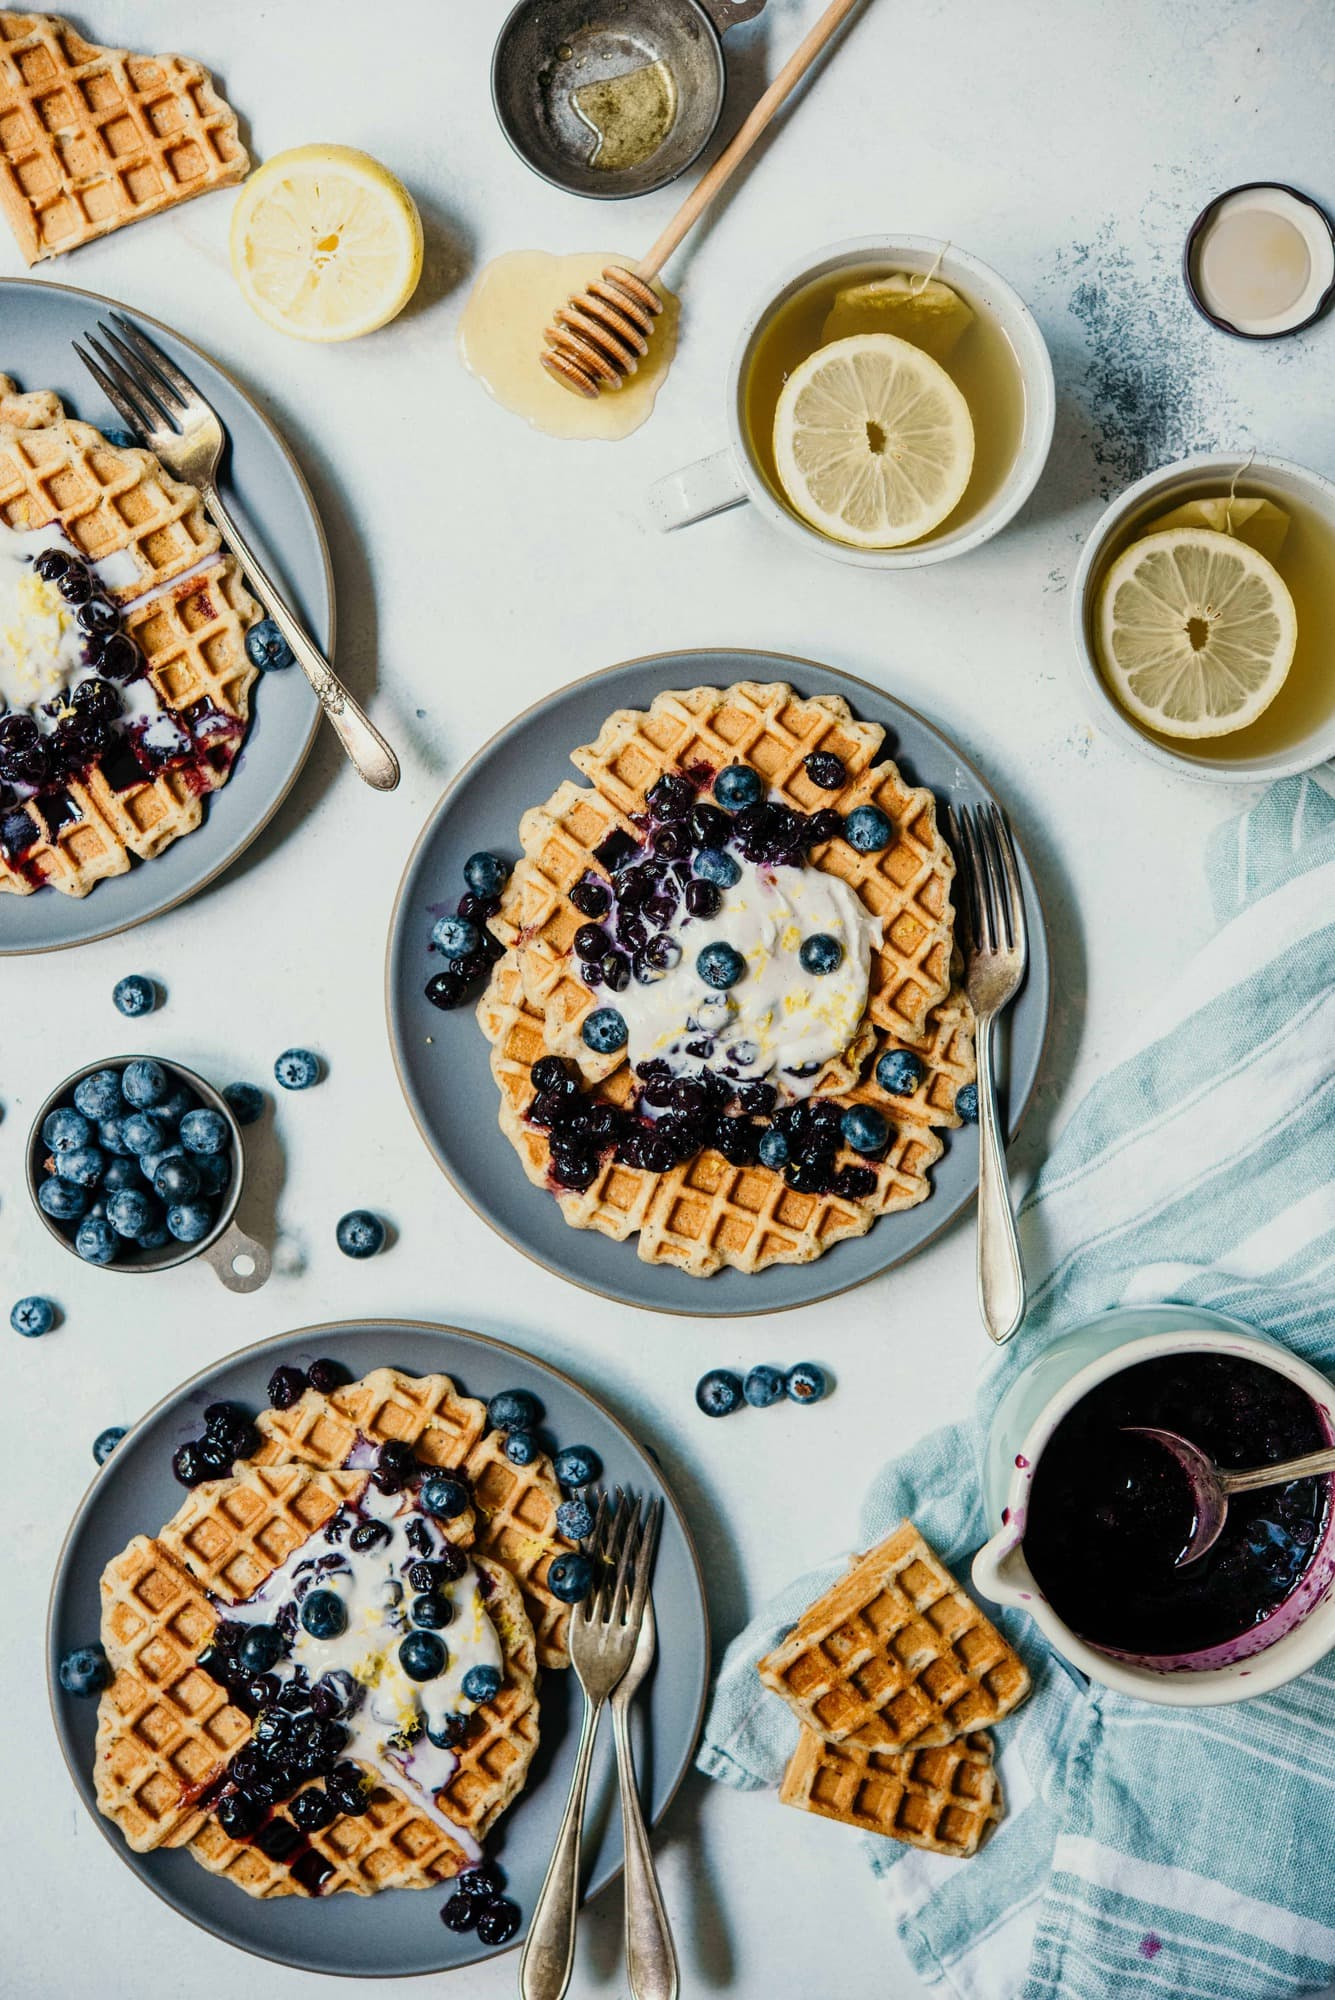 Overhead of 3 plates of lemon blueberry poppyseed waffles topped with whipped cream and blueberries on a white background